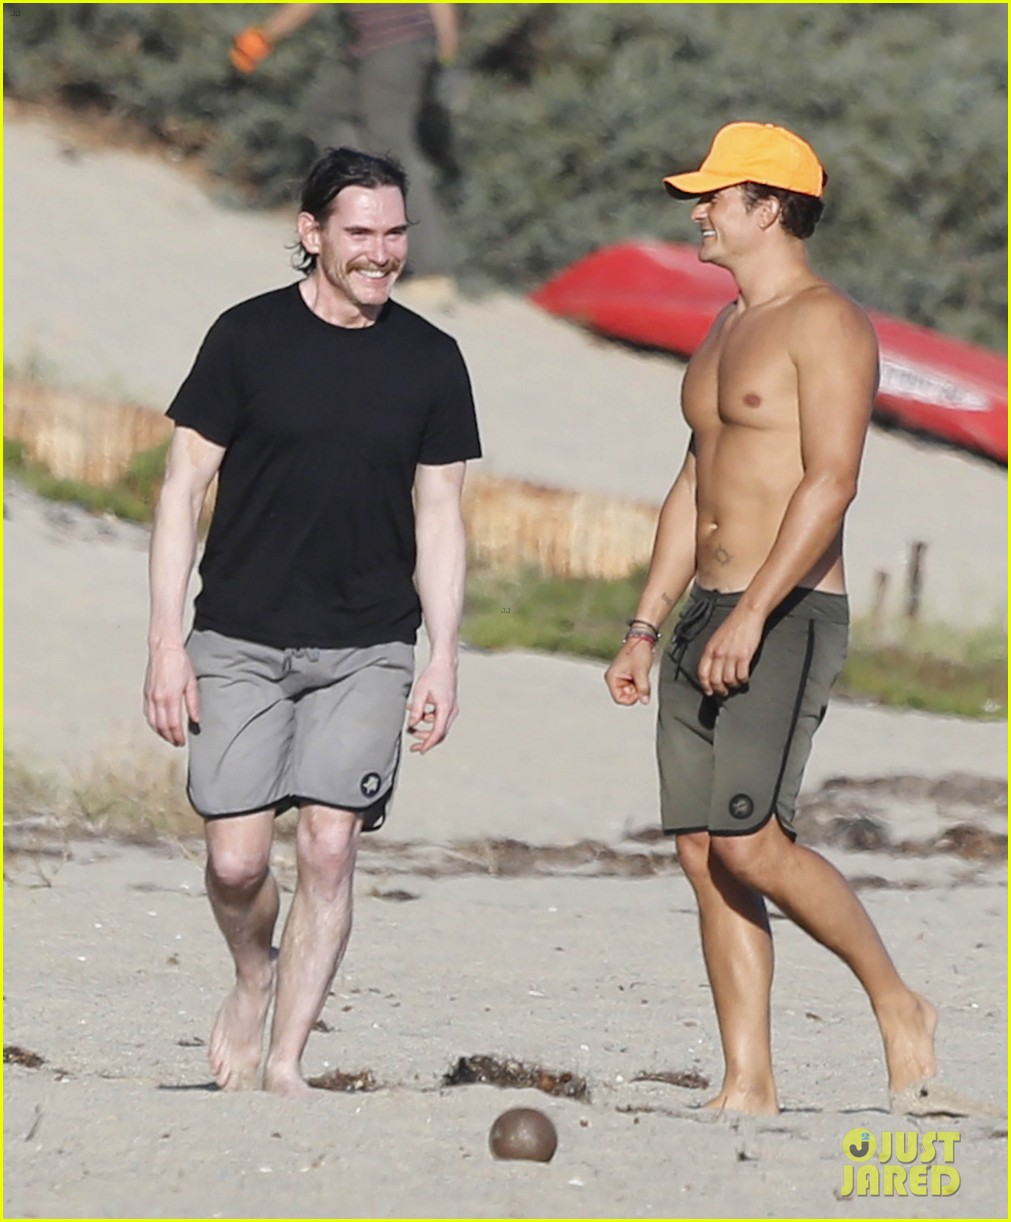 Orlando Bloom Looks Ripped While Shirtless on Malibu Beach: Photo 3476954   Kenny Chesney, Laird